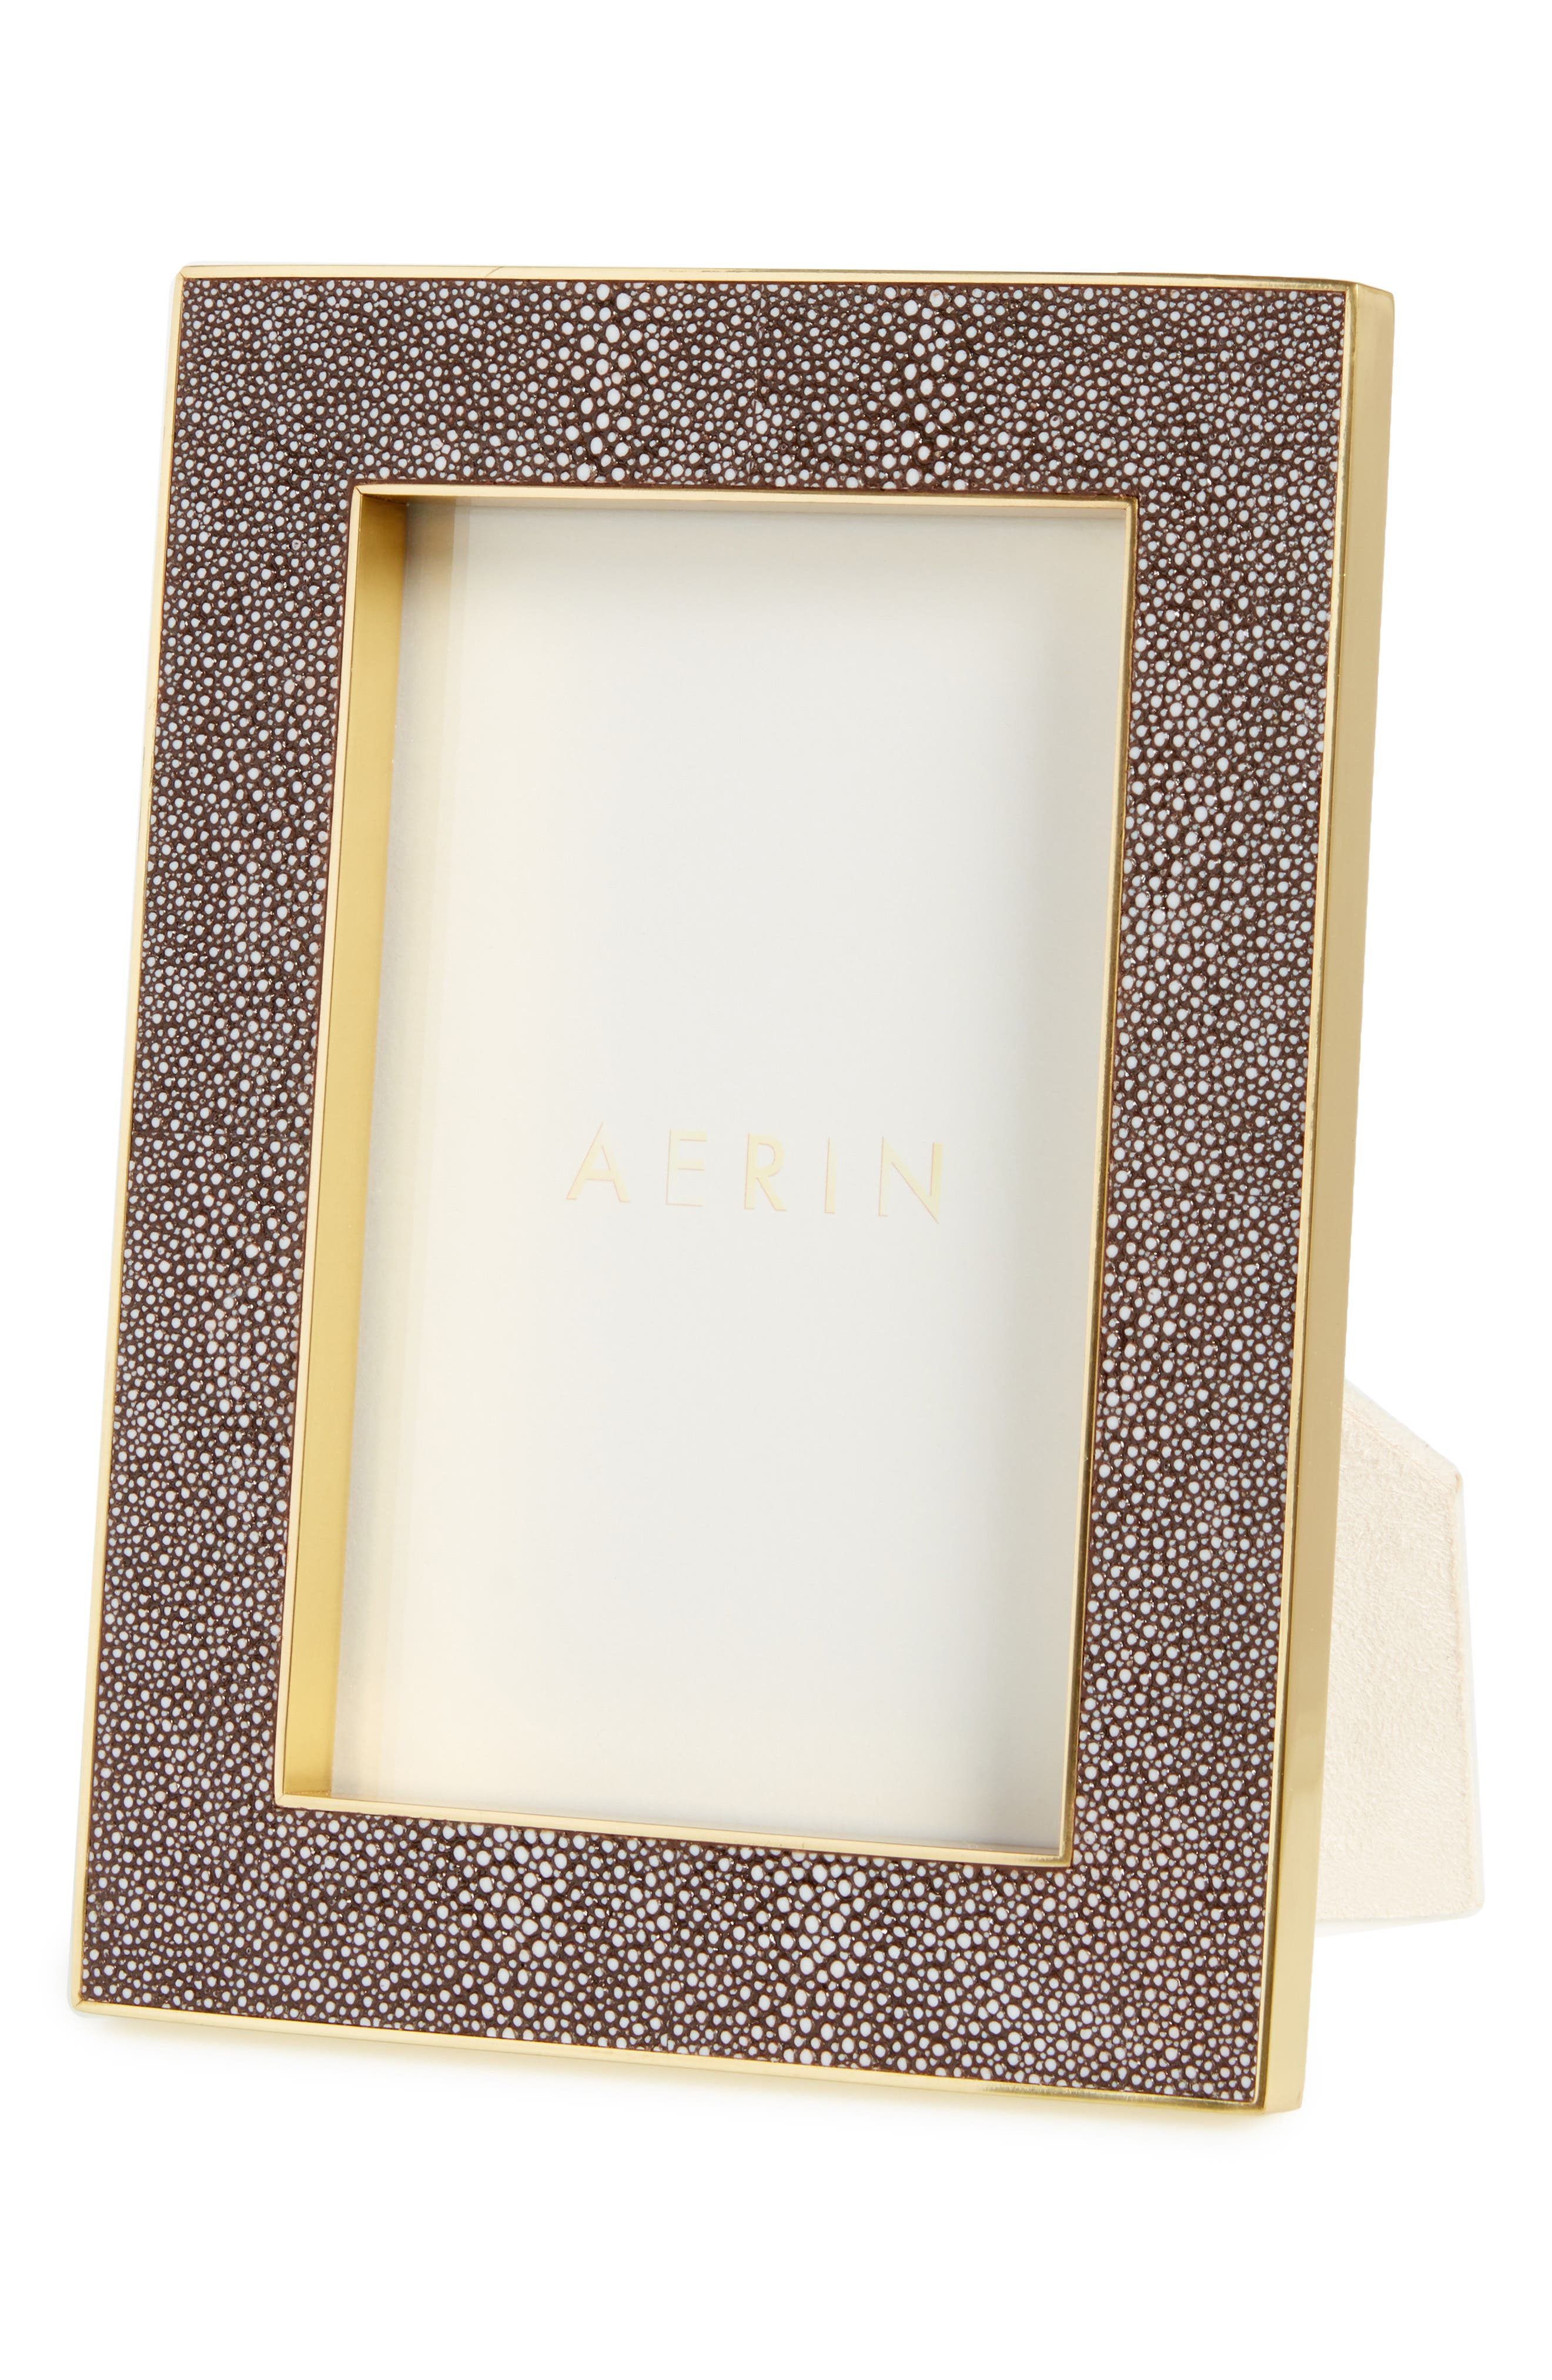 Classic Shagreen Picture Frame,                         Main,                         color, Metallic Gold